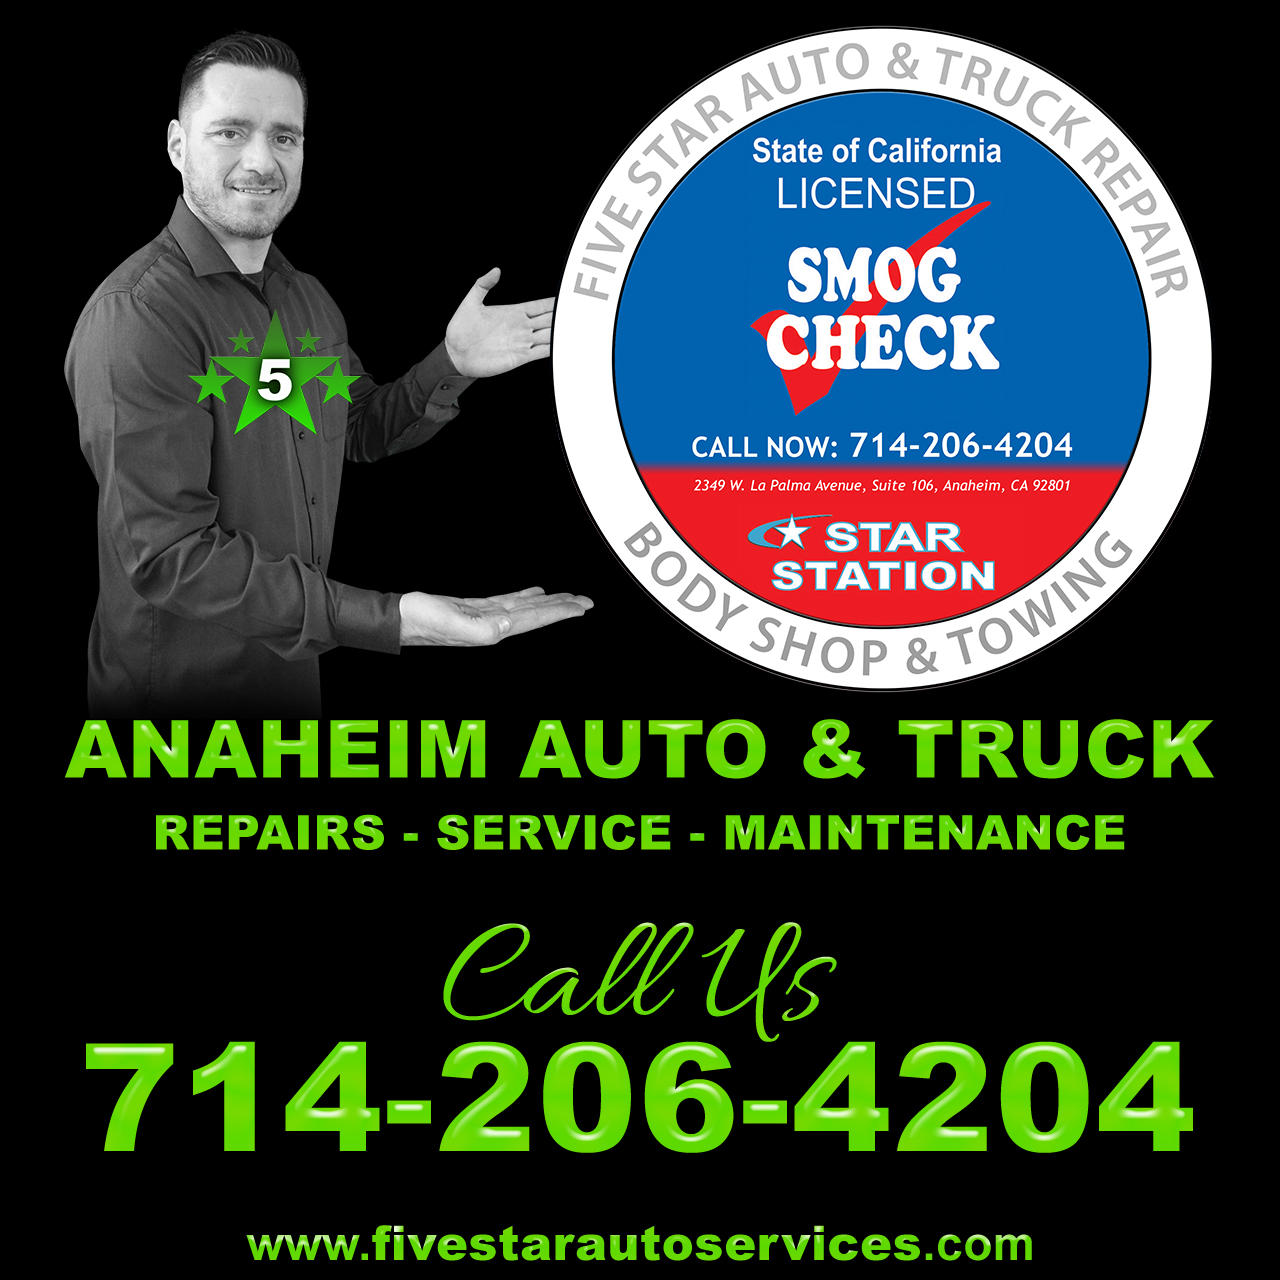 Five Star Auto & Truck Repair image 1